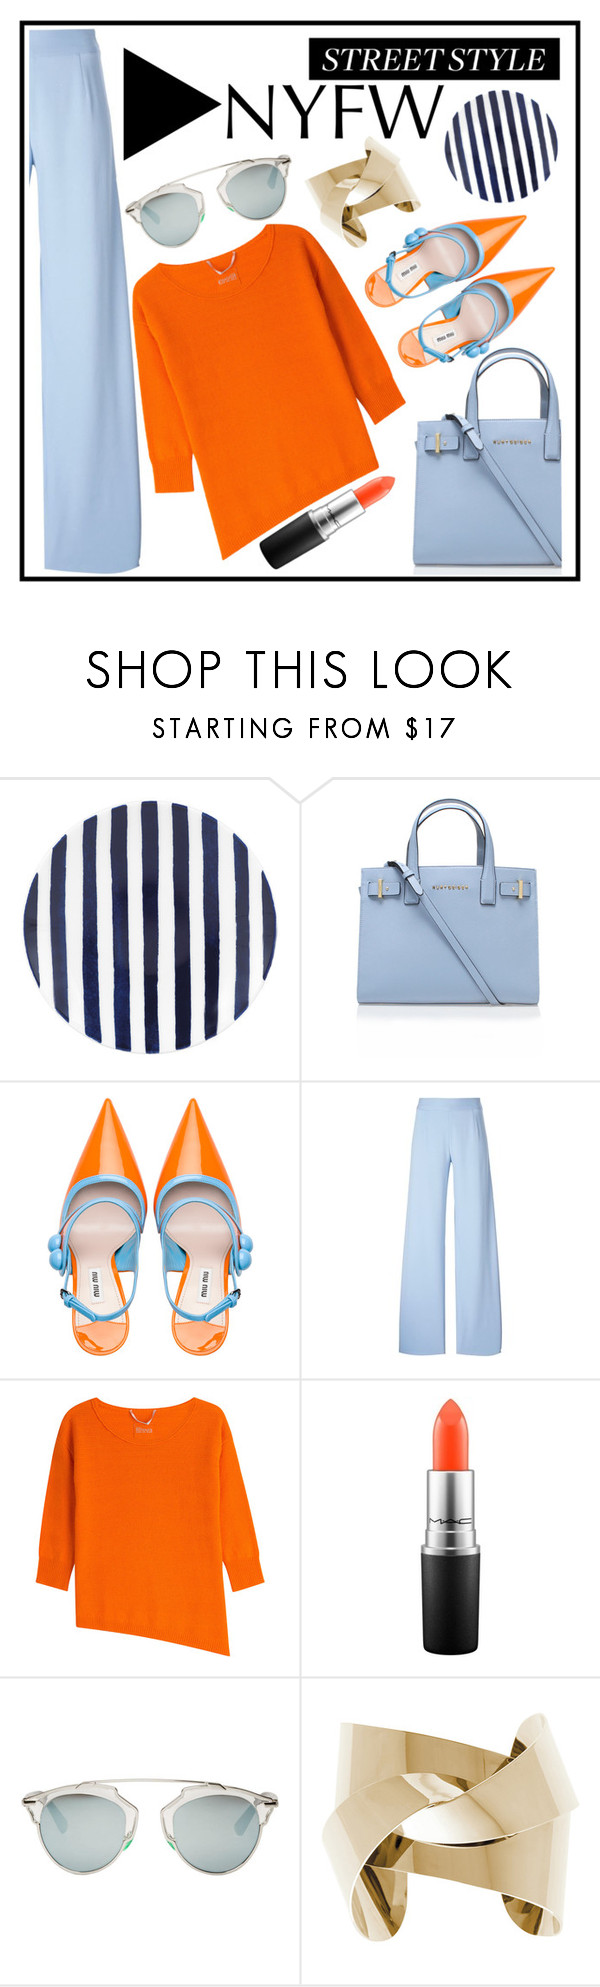 """NYFW"" by misskarolina ❤ liked on Polyvore featuring Kate Spade, Kurt Geiger, Miu Miu, Christopher Kane, 81 Hours, MAC Cosmetics and Christian Dior"